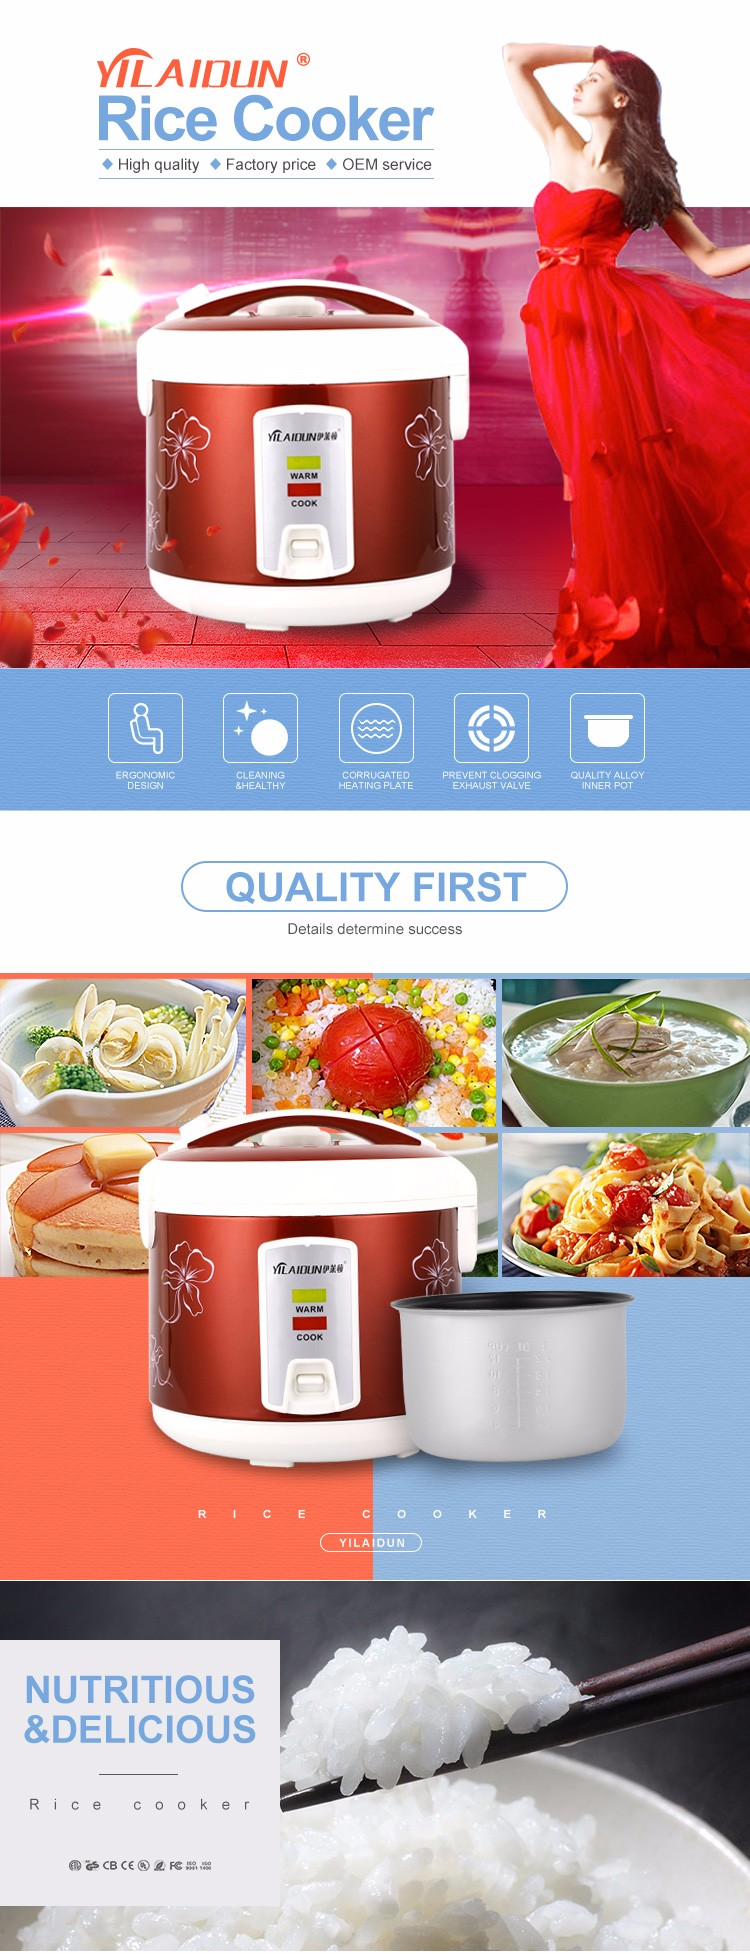 medium resolution of italian kitchen appliances red rice cooker electric diagram